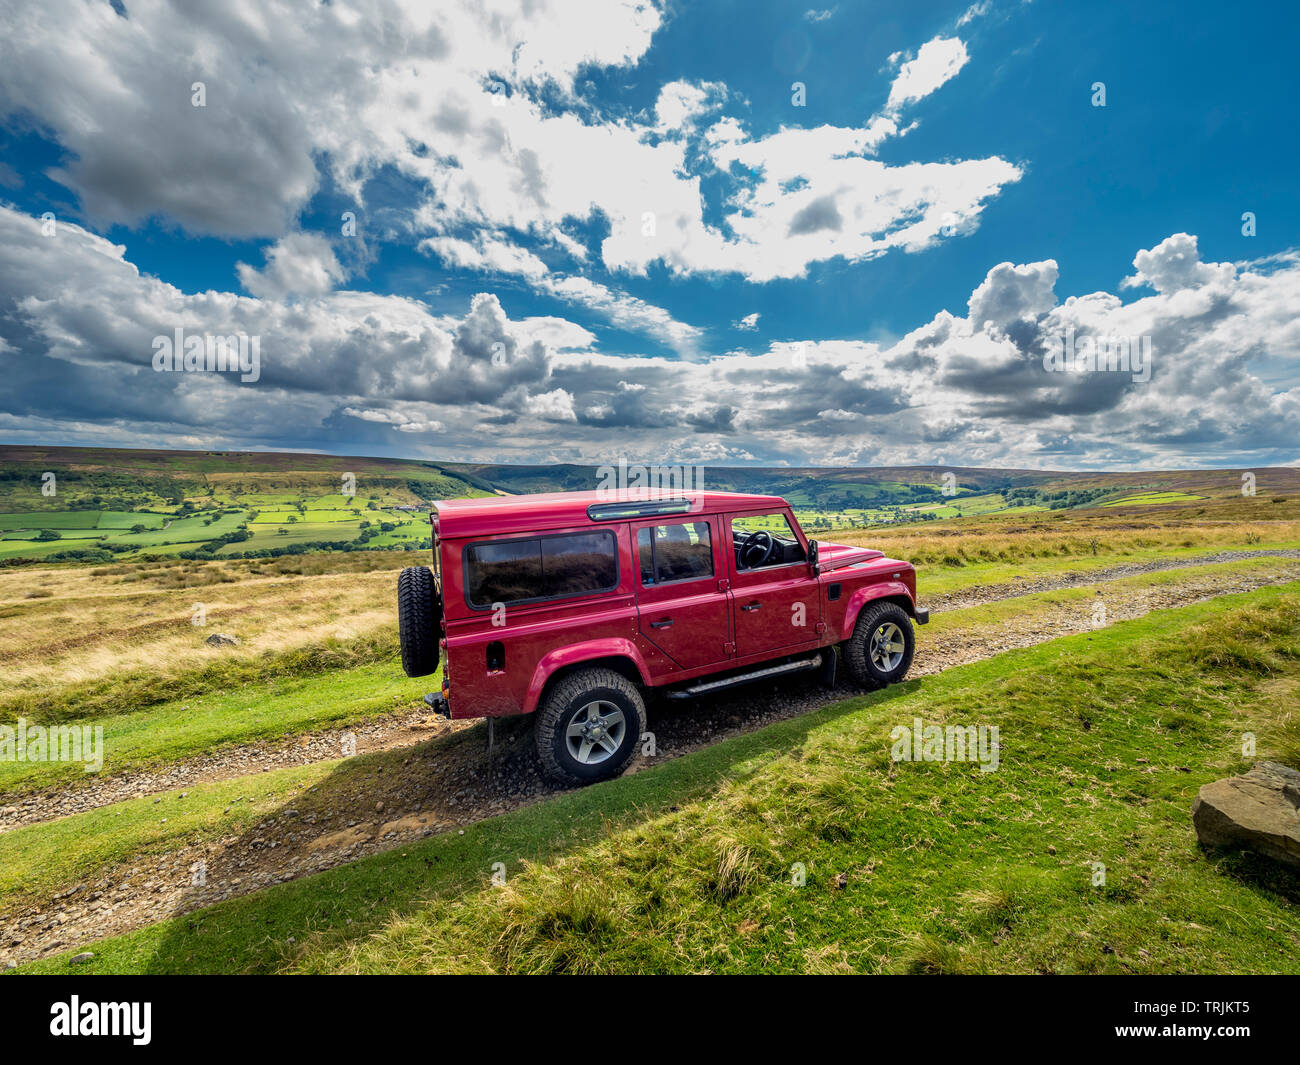 Red Land Rover Defender 110 4WD car navigating a Green Lane track, North Yorkshire Moors, UK. - Stock Image